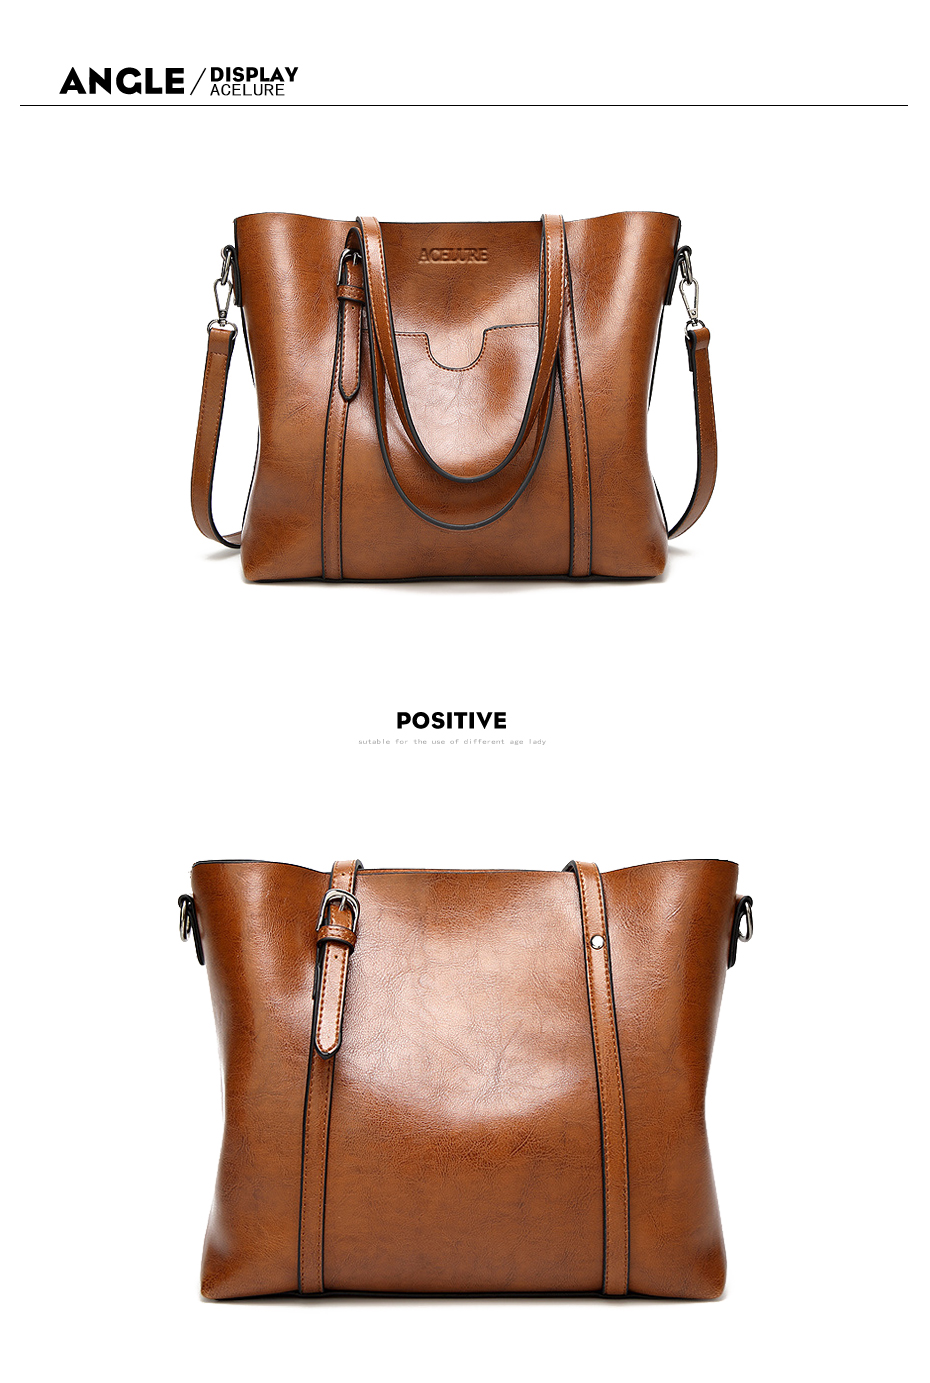 ACELURE Women bag Oil wax Women's Leather Handbags Luxury Lady Hand Bags With Purse Pocket Women messenger bag Big Tote Sac Bols 7